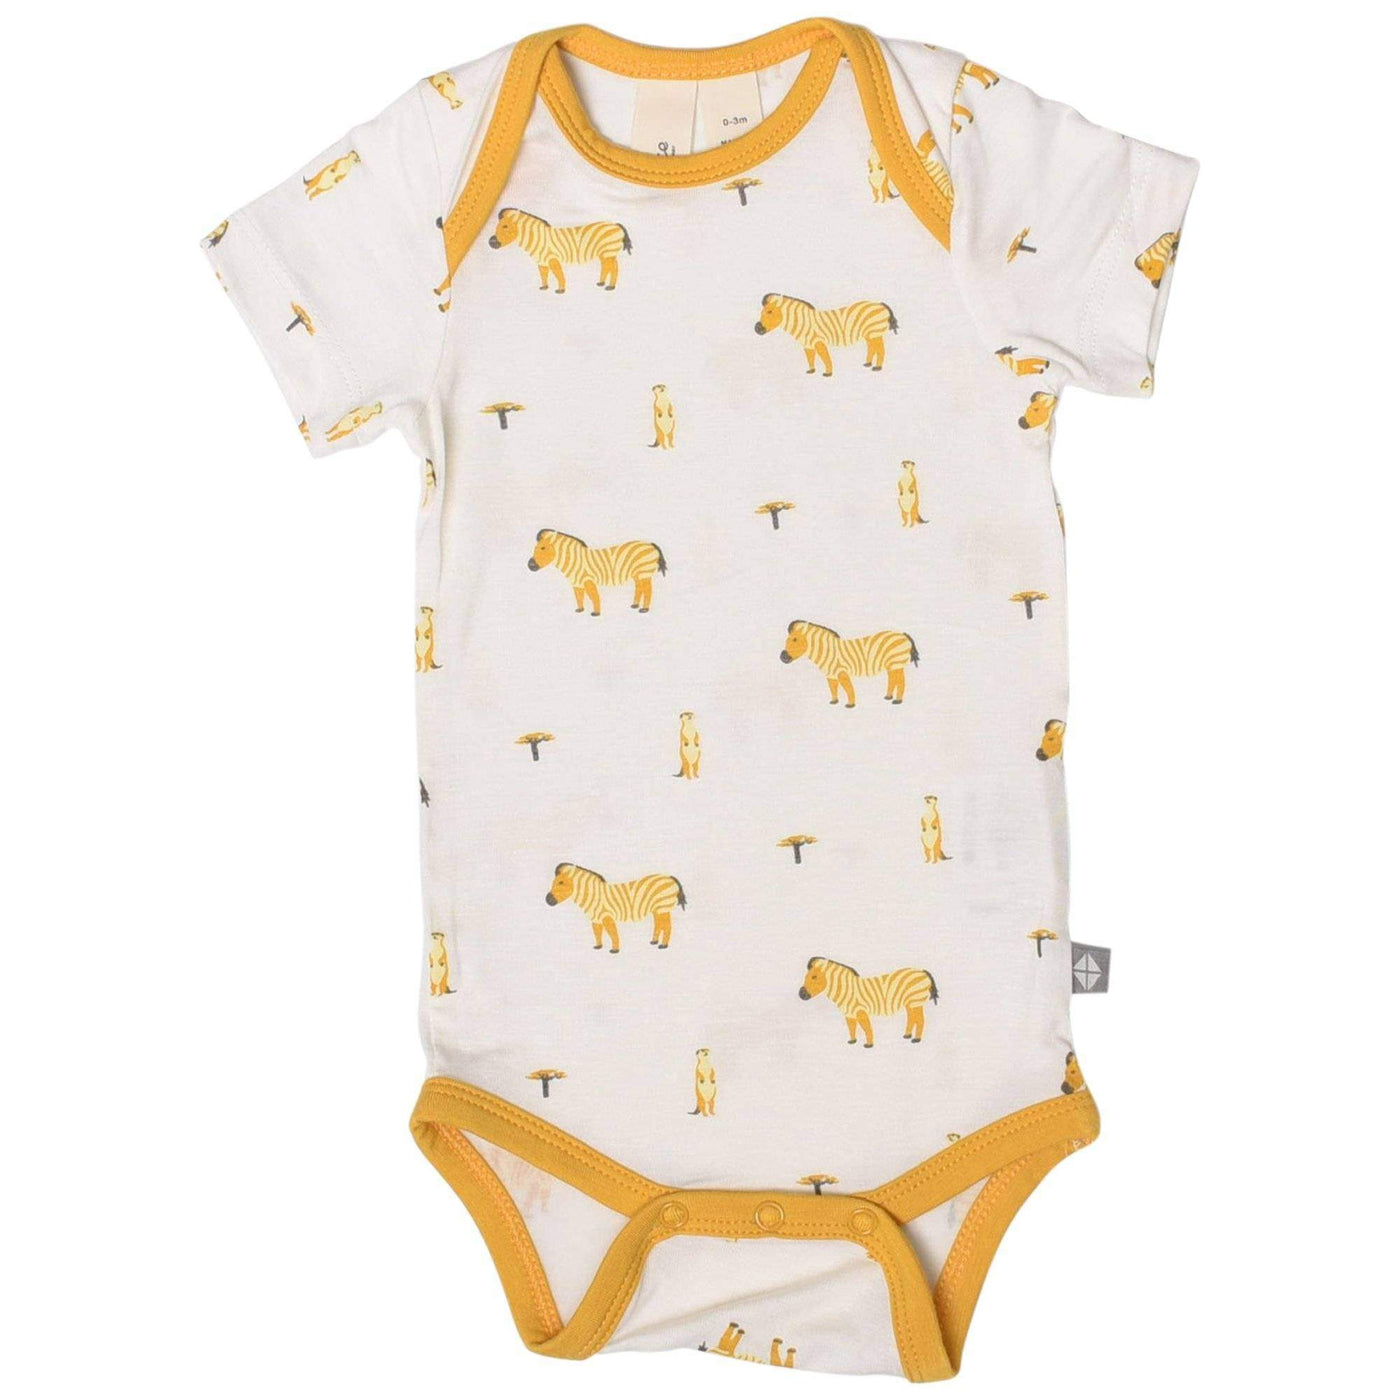 Printed Bodysuit in Savanna - Kyte Baby